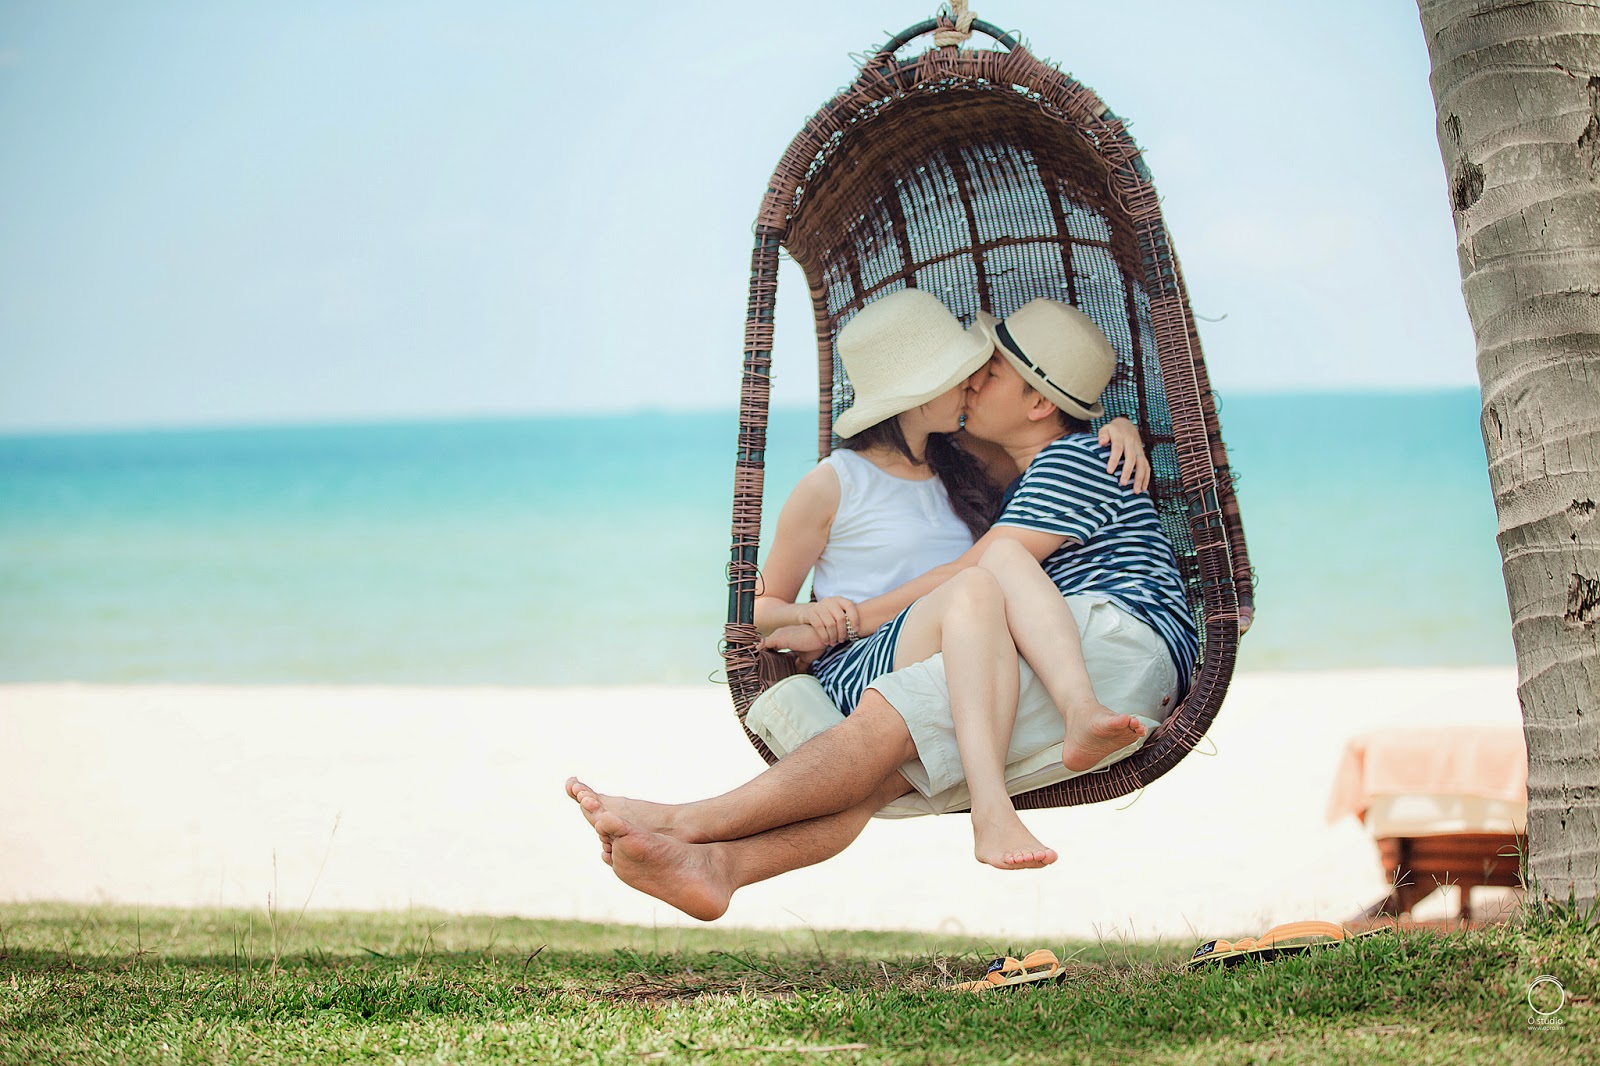 PHU QUOC ISLAND HONEYMOON TOUR 3 DAYS 2 NIGHTS FROM 130$/ PERSON ONLY